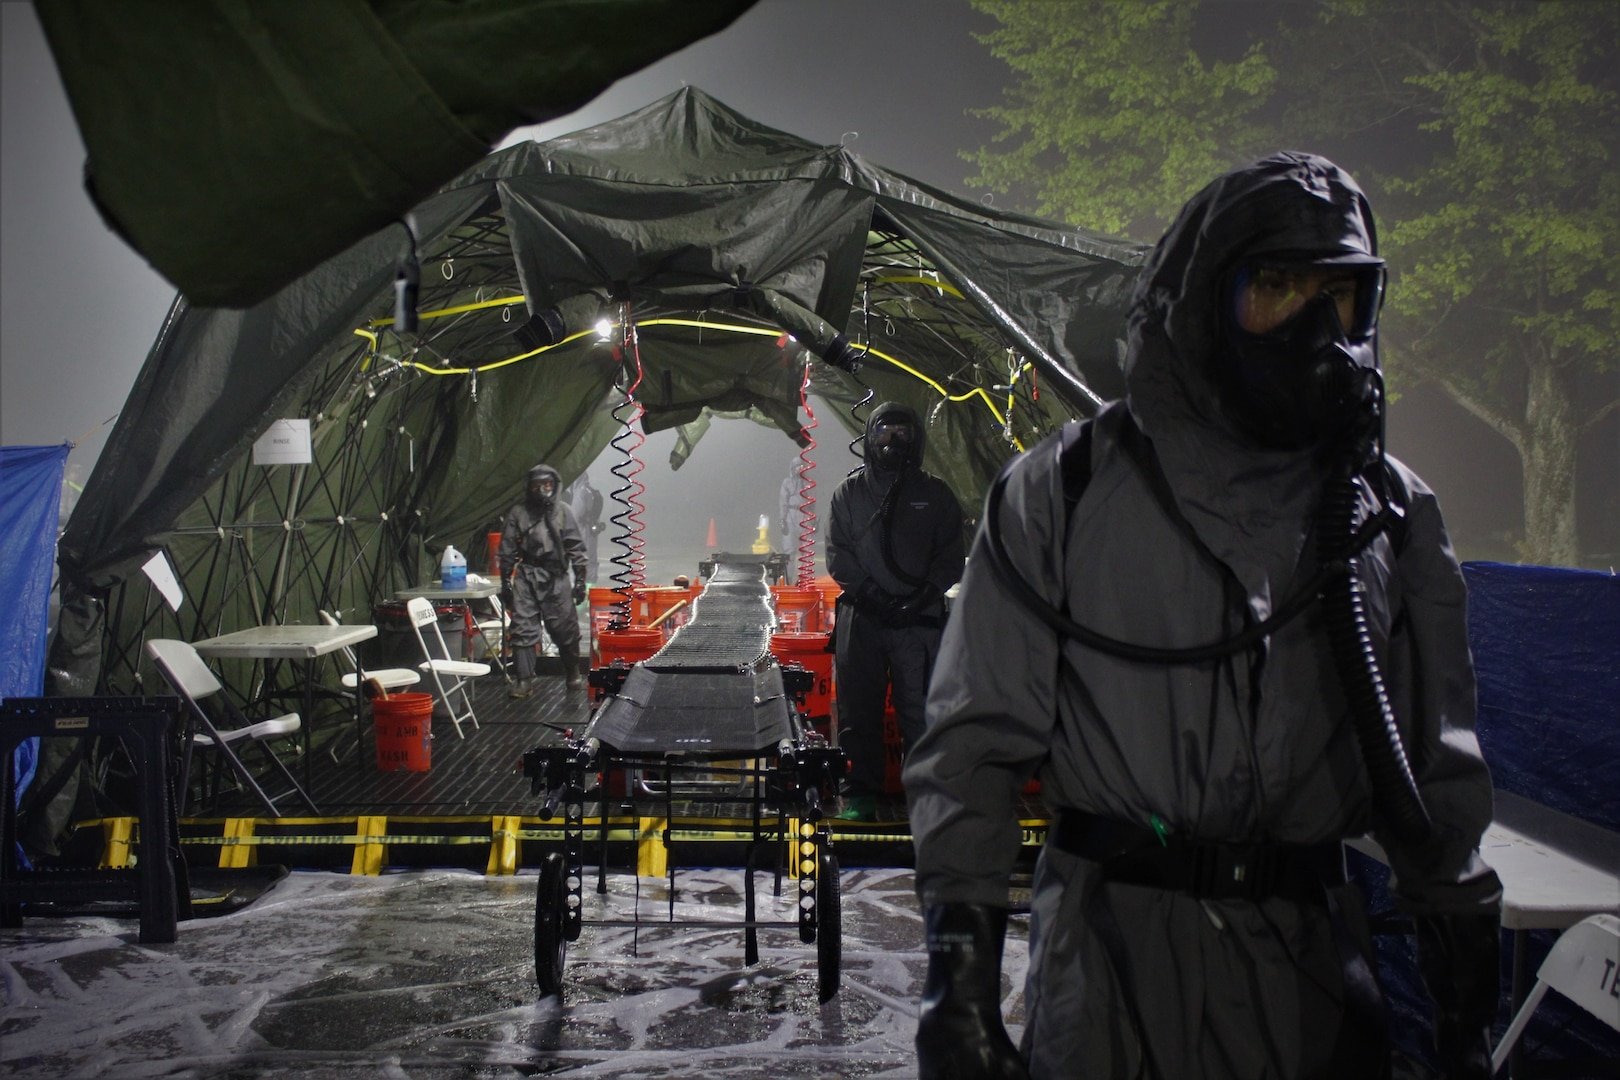 Soldiers from 181st Chemical Company (Hazard Response), Task Force Ops, Joint Task Force Civil Support (JTFCS), are prepared for role-players to come through their Mass Casualty Decontamination line at Exercise Guardian Response at Muscatatuck Urban Training Center, May 4, 2019. When directed, JTFCS provides command and control of the 5,200-person Defense Chemical Biological Radiological Nuclear (CBRN) Response Force (DCRF) during a catastrophic crisis in support of civil authorities and the lead federal agency. Vibrant Response/Guardian Response is an annual, combined Command Post Exercise and Field Training Exercise which validates the ability of the DCRF forces to conduct the CBRN Response mission. (U.S. Army photo by 2nd Lt. Corey Maisch/released)